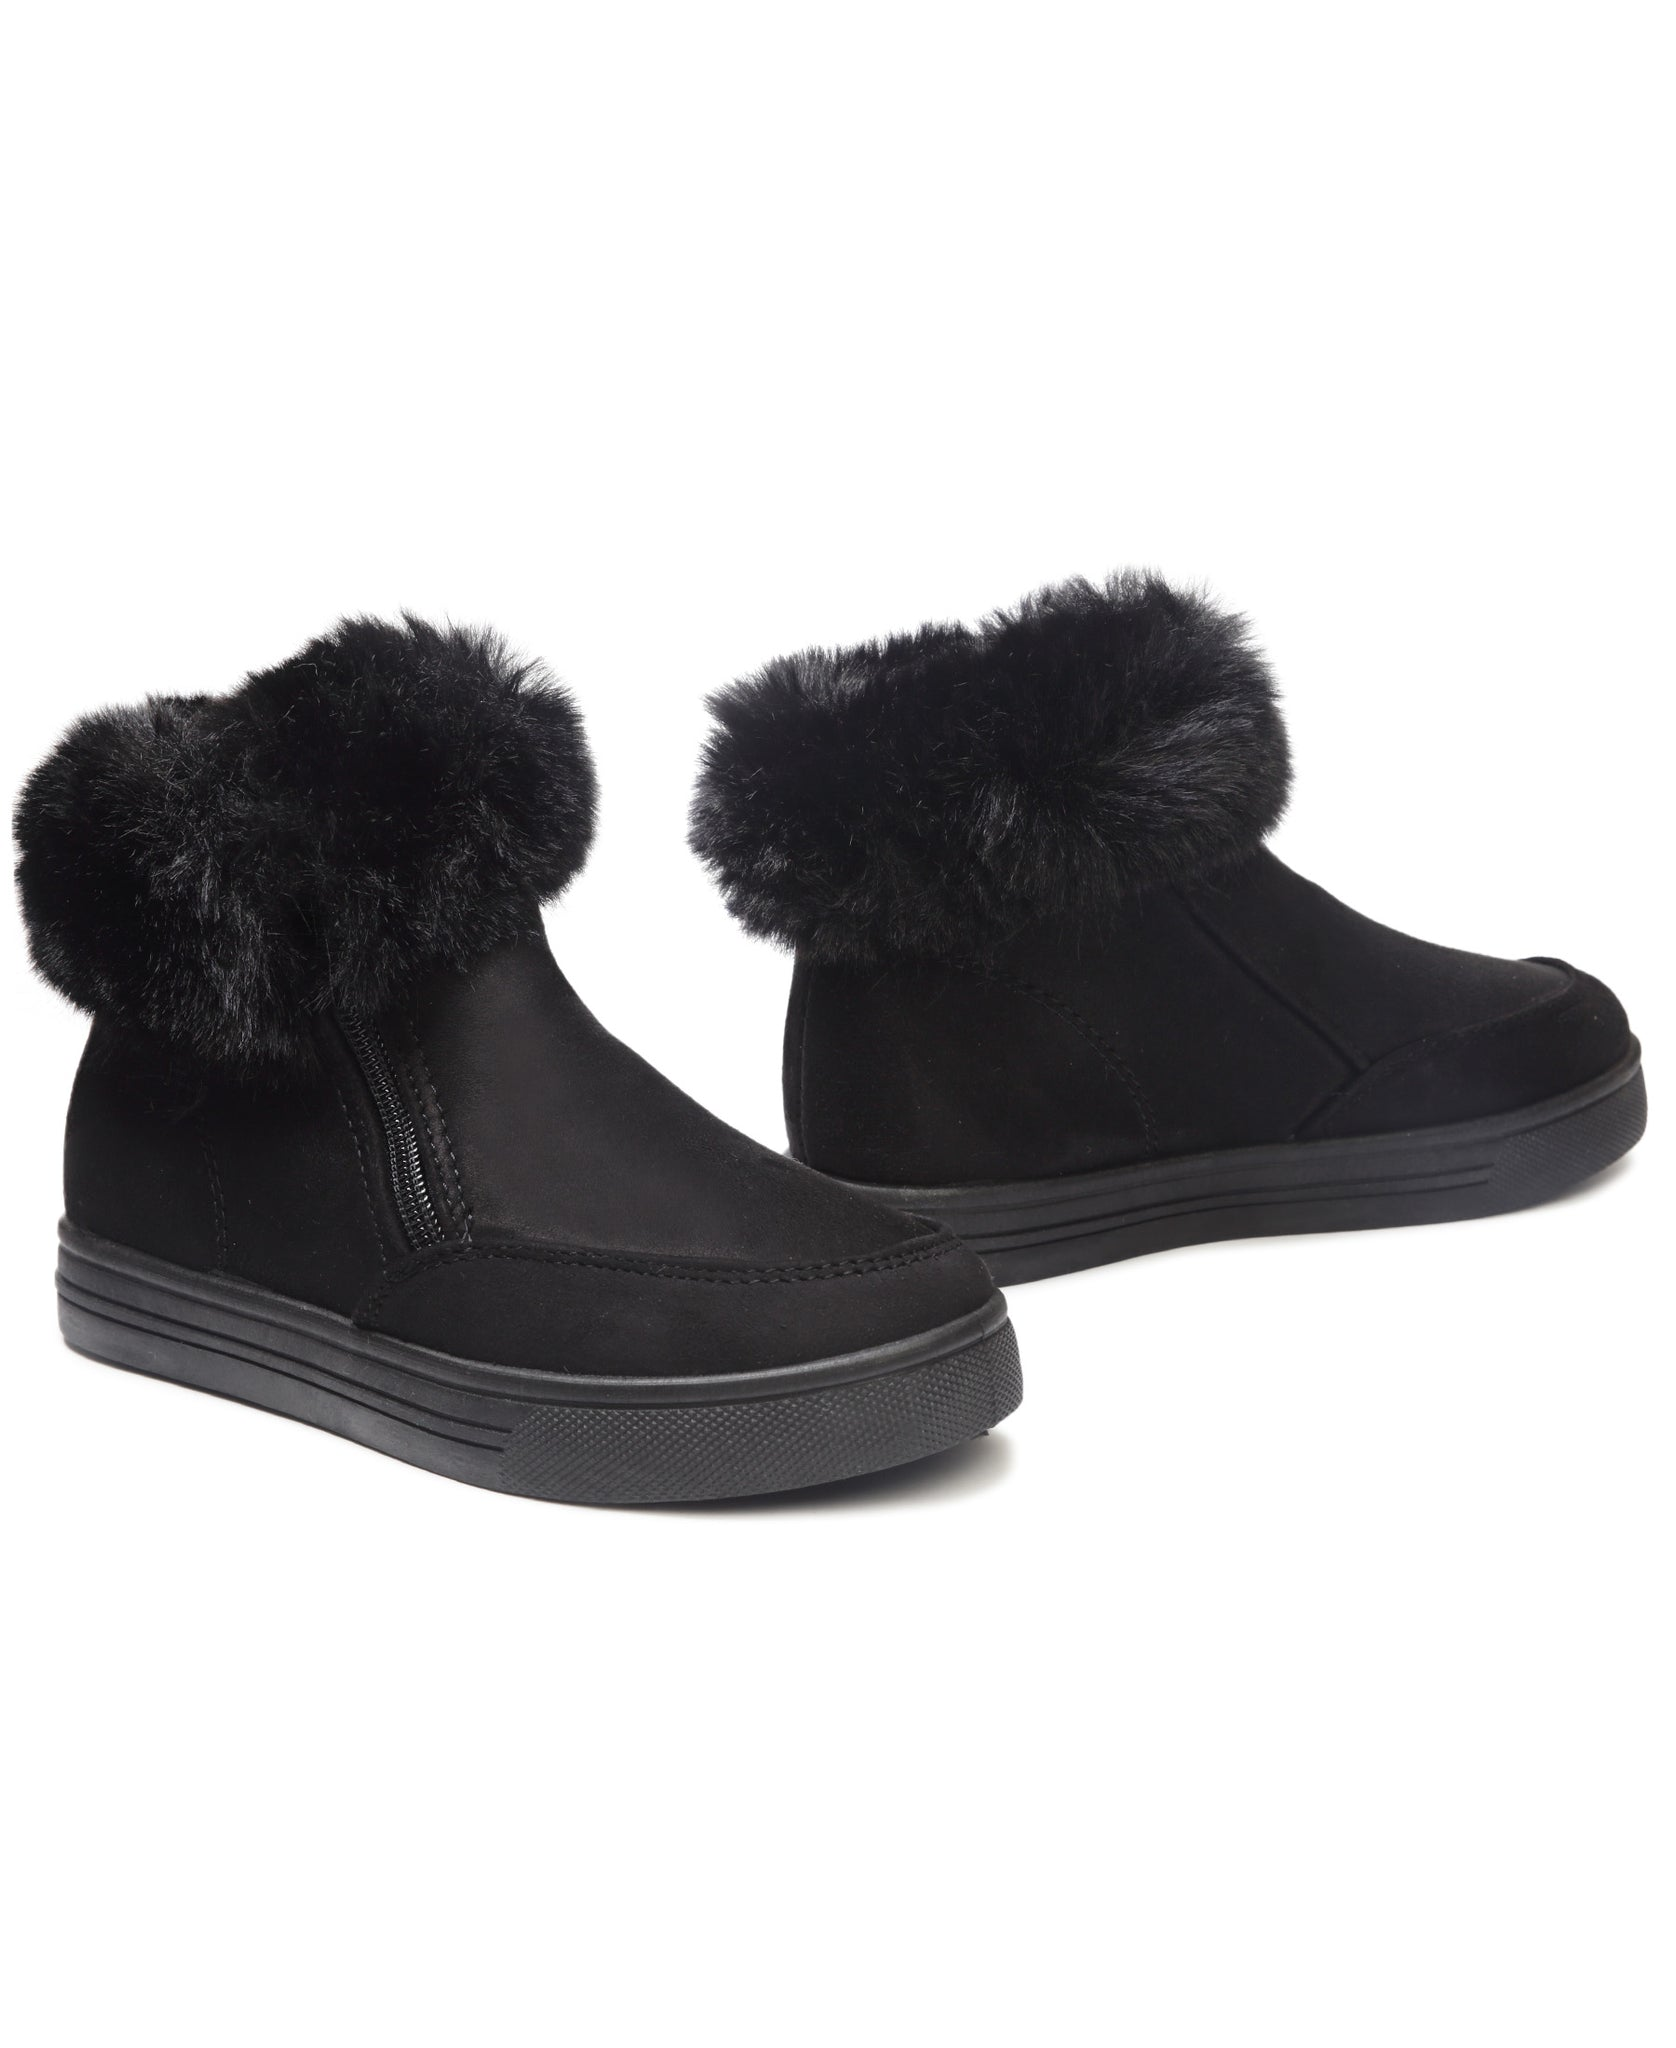 Girls Fluff Sneakers - Black